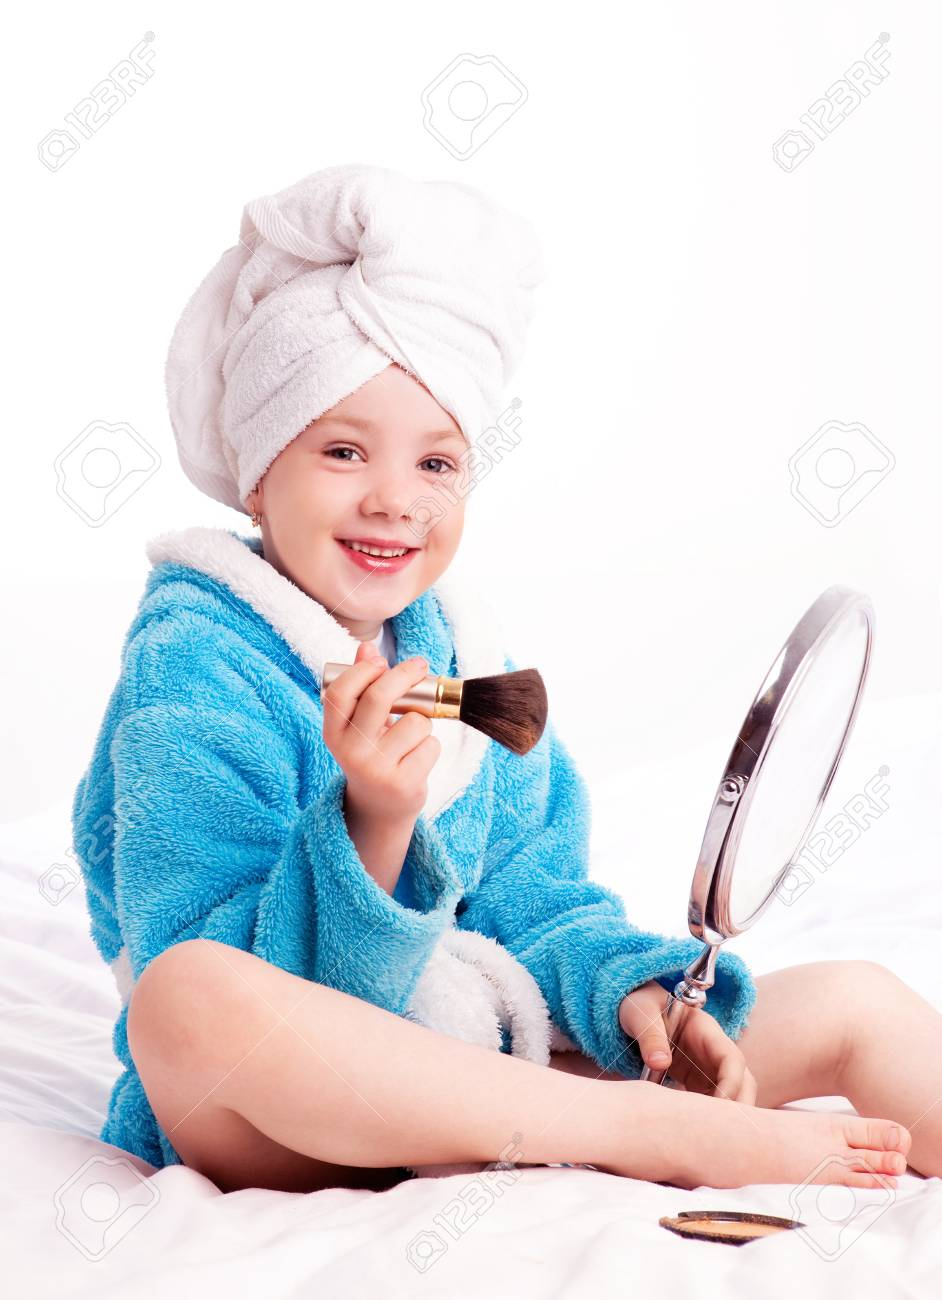 beautiful five year old girl with a mirror applying makeup on her face in bed at home Stock Photo - 13046646